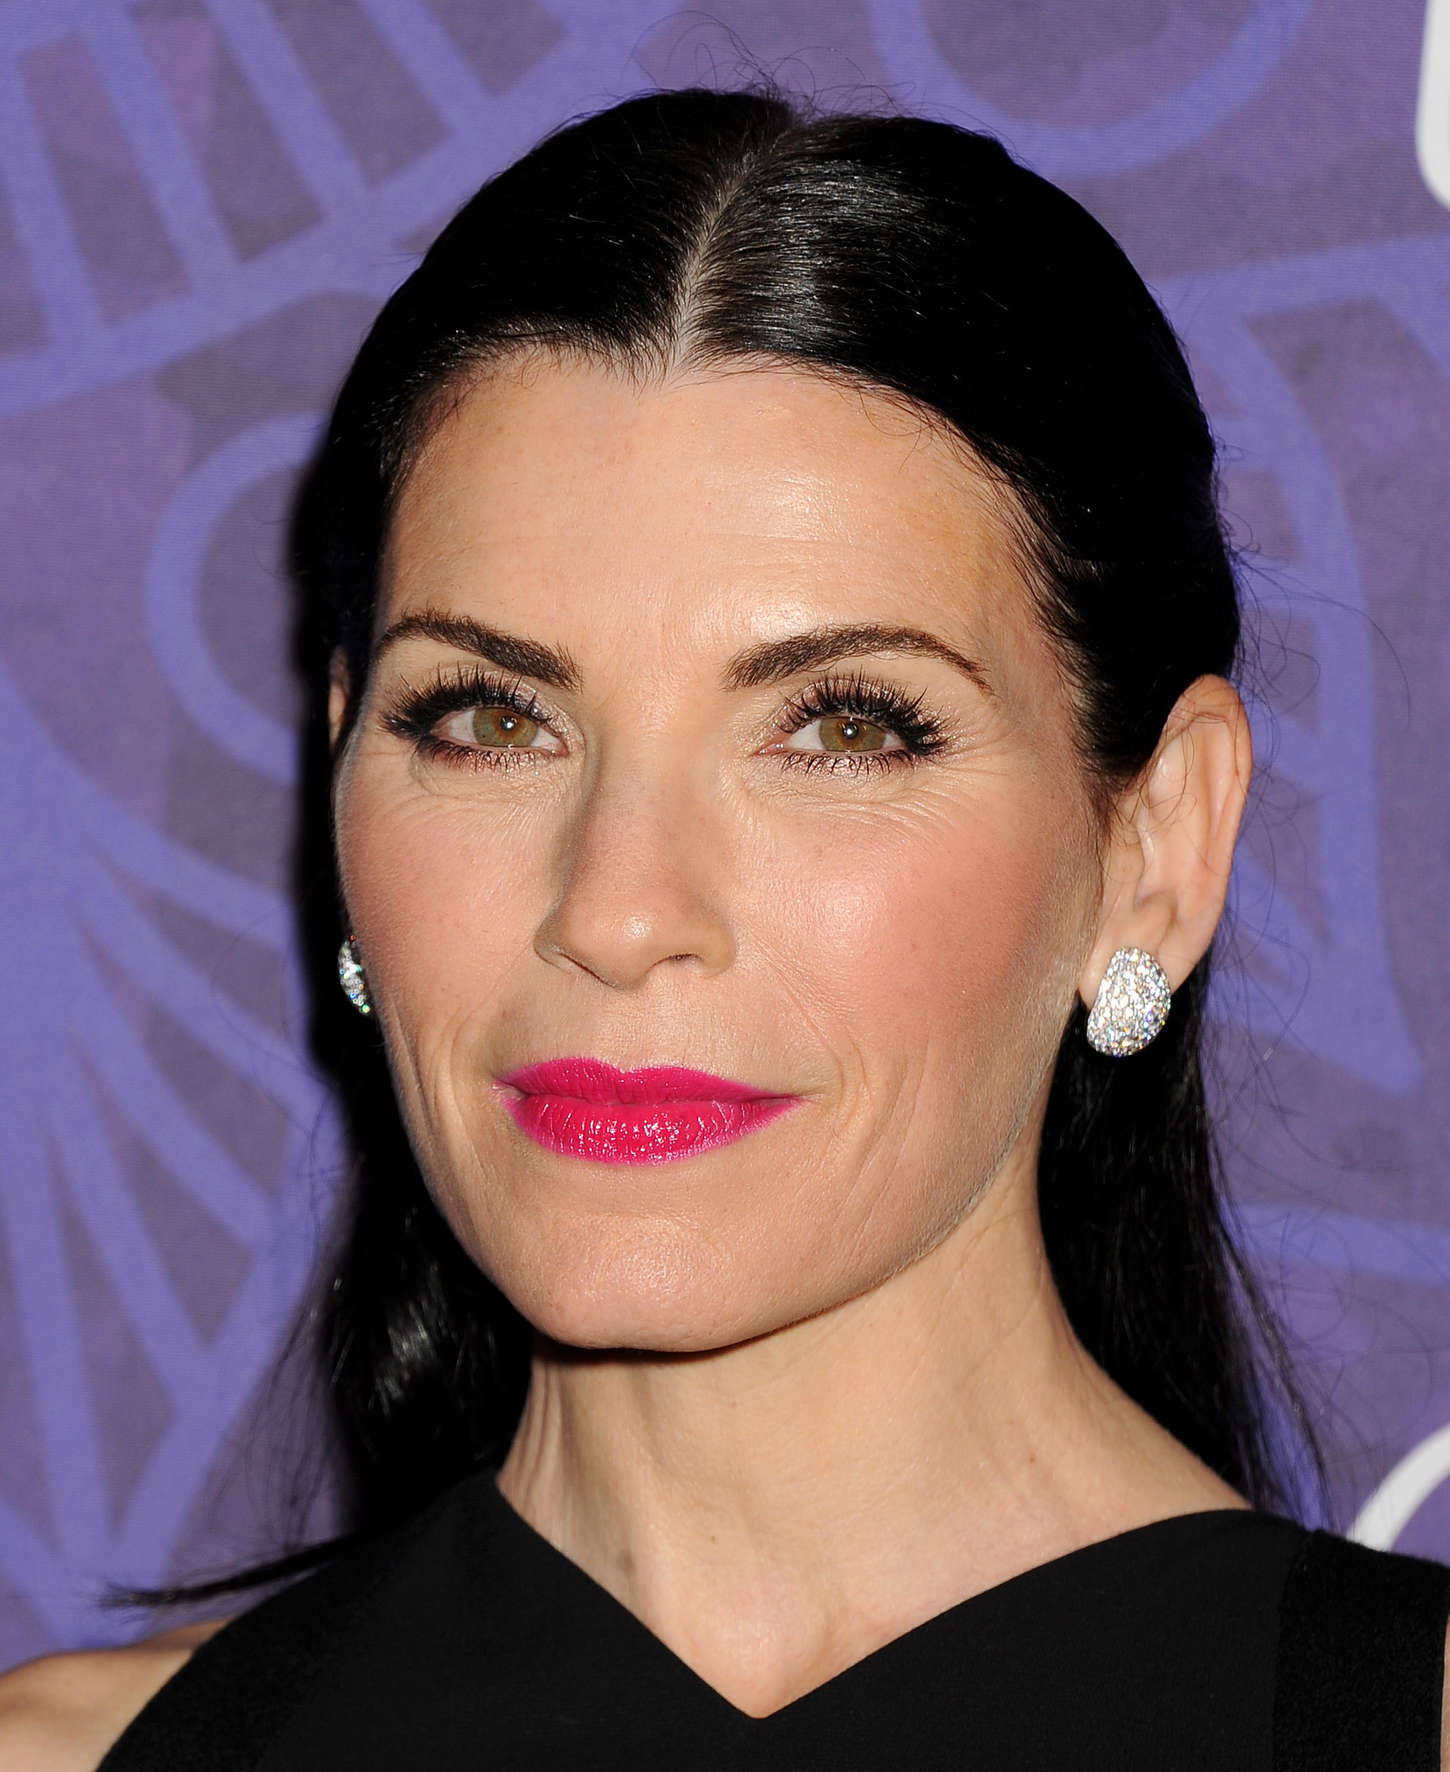 julianna margulies son